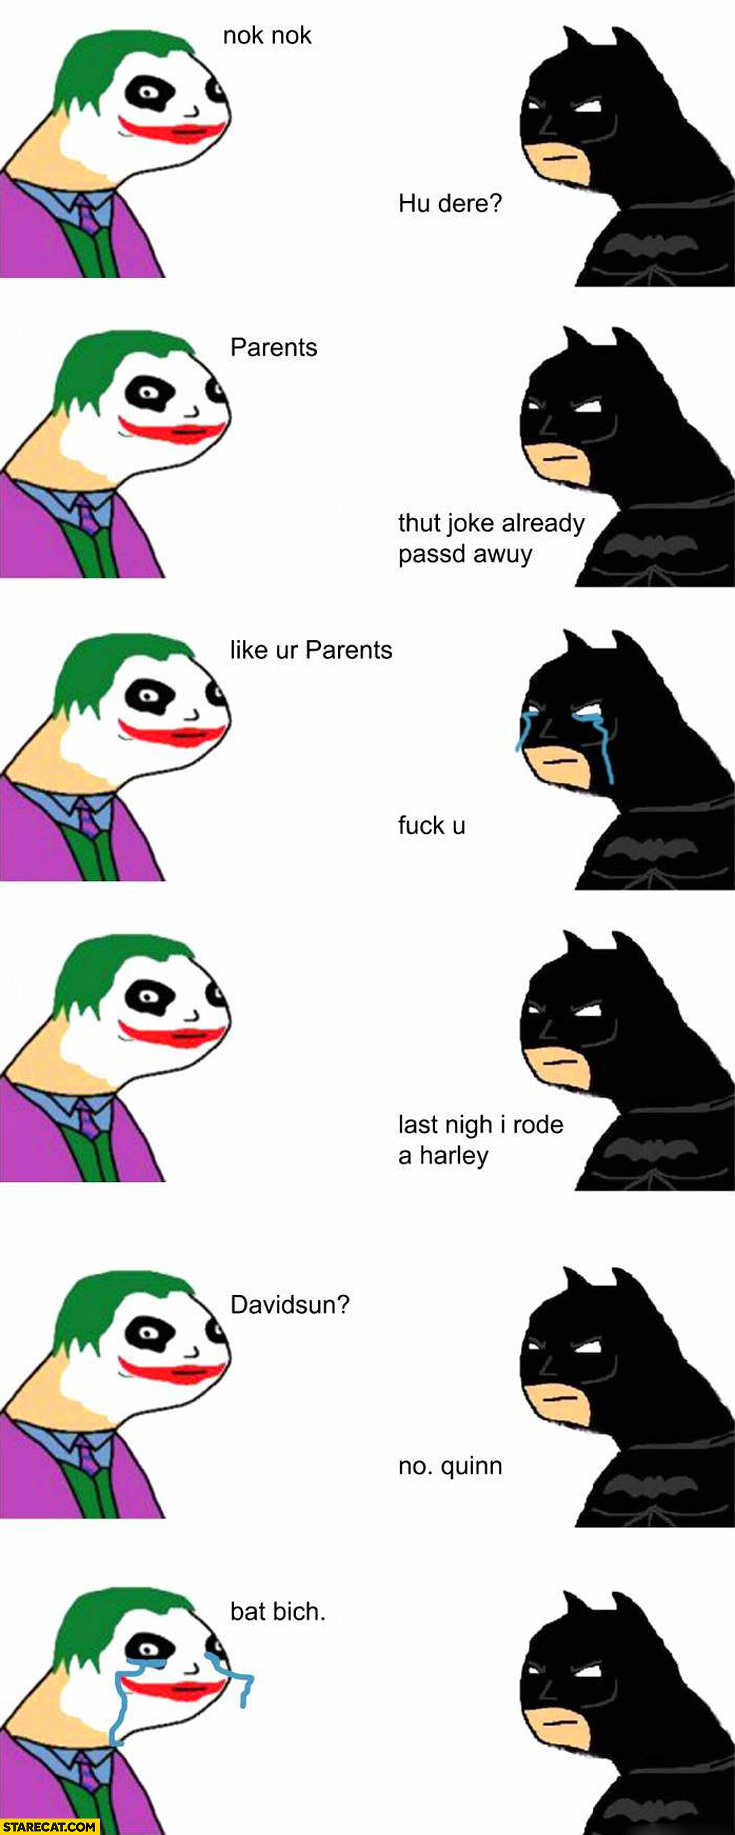 Nok nok who's there parents already passed away Batman Joker conversation